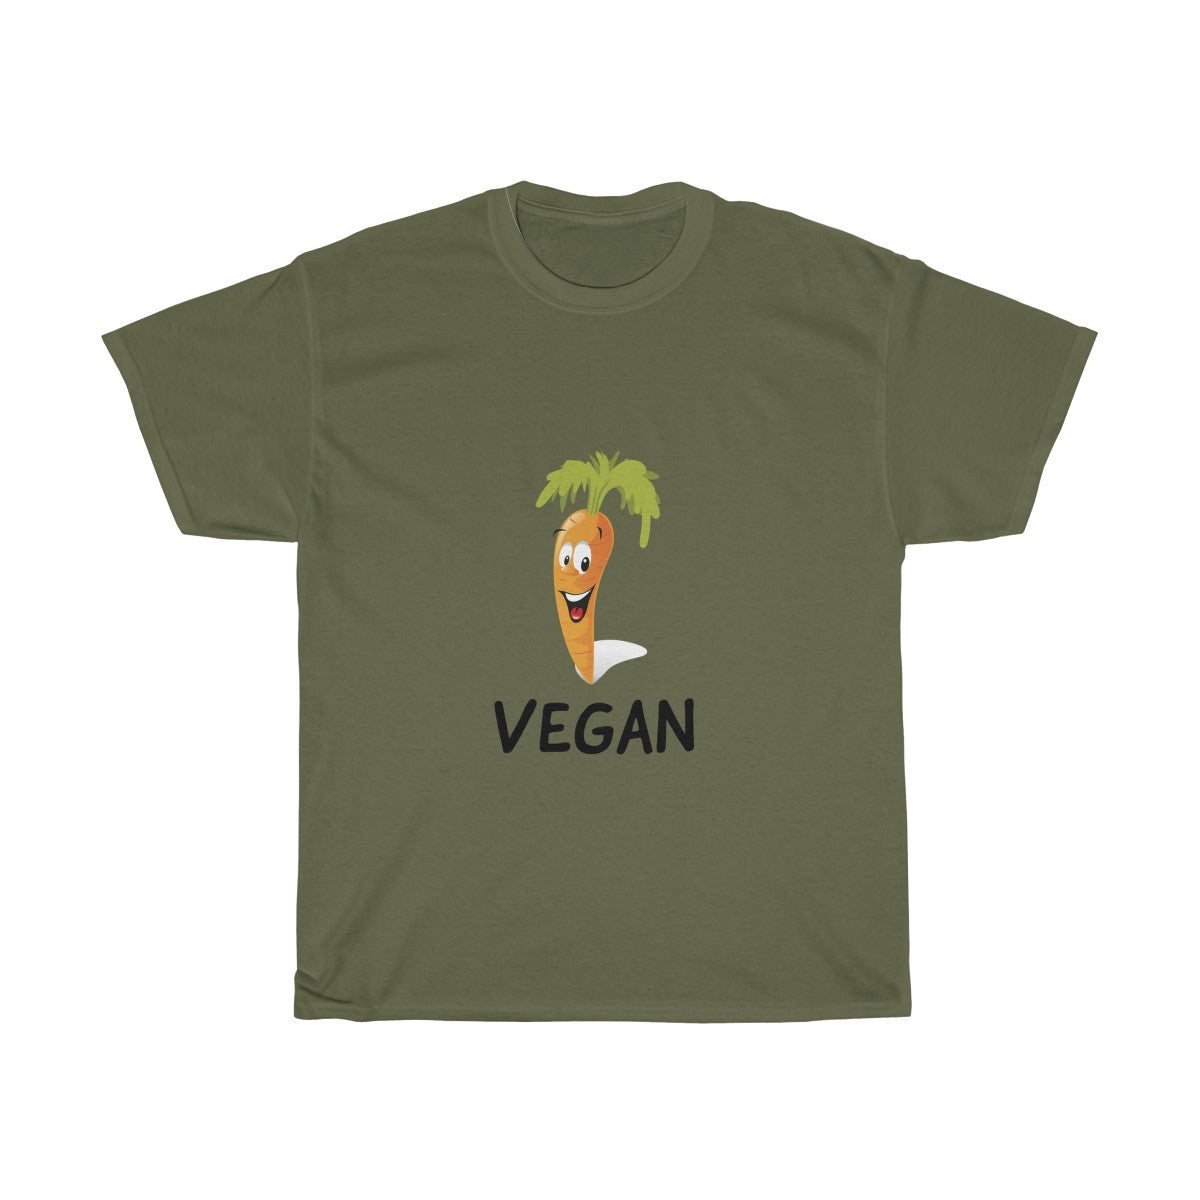 Vegan Carrot - Unisex T-Shirt - My Vegan Menu